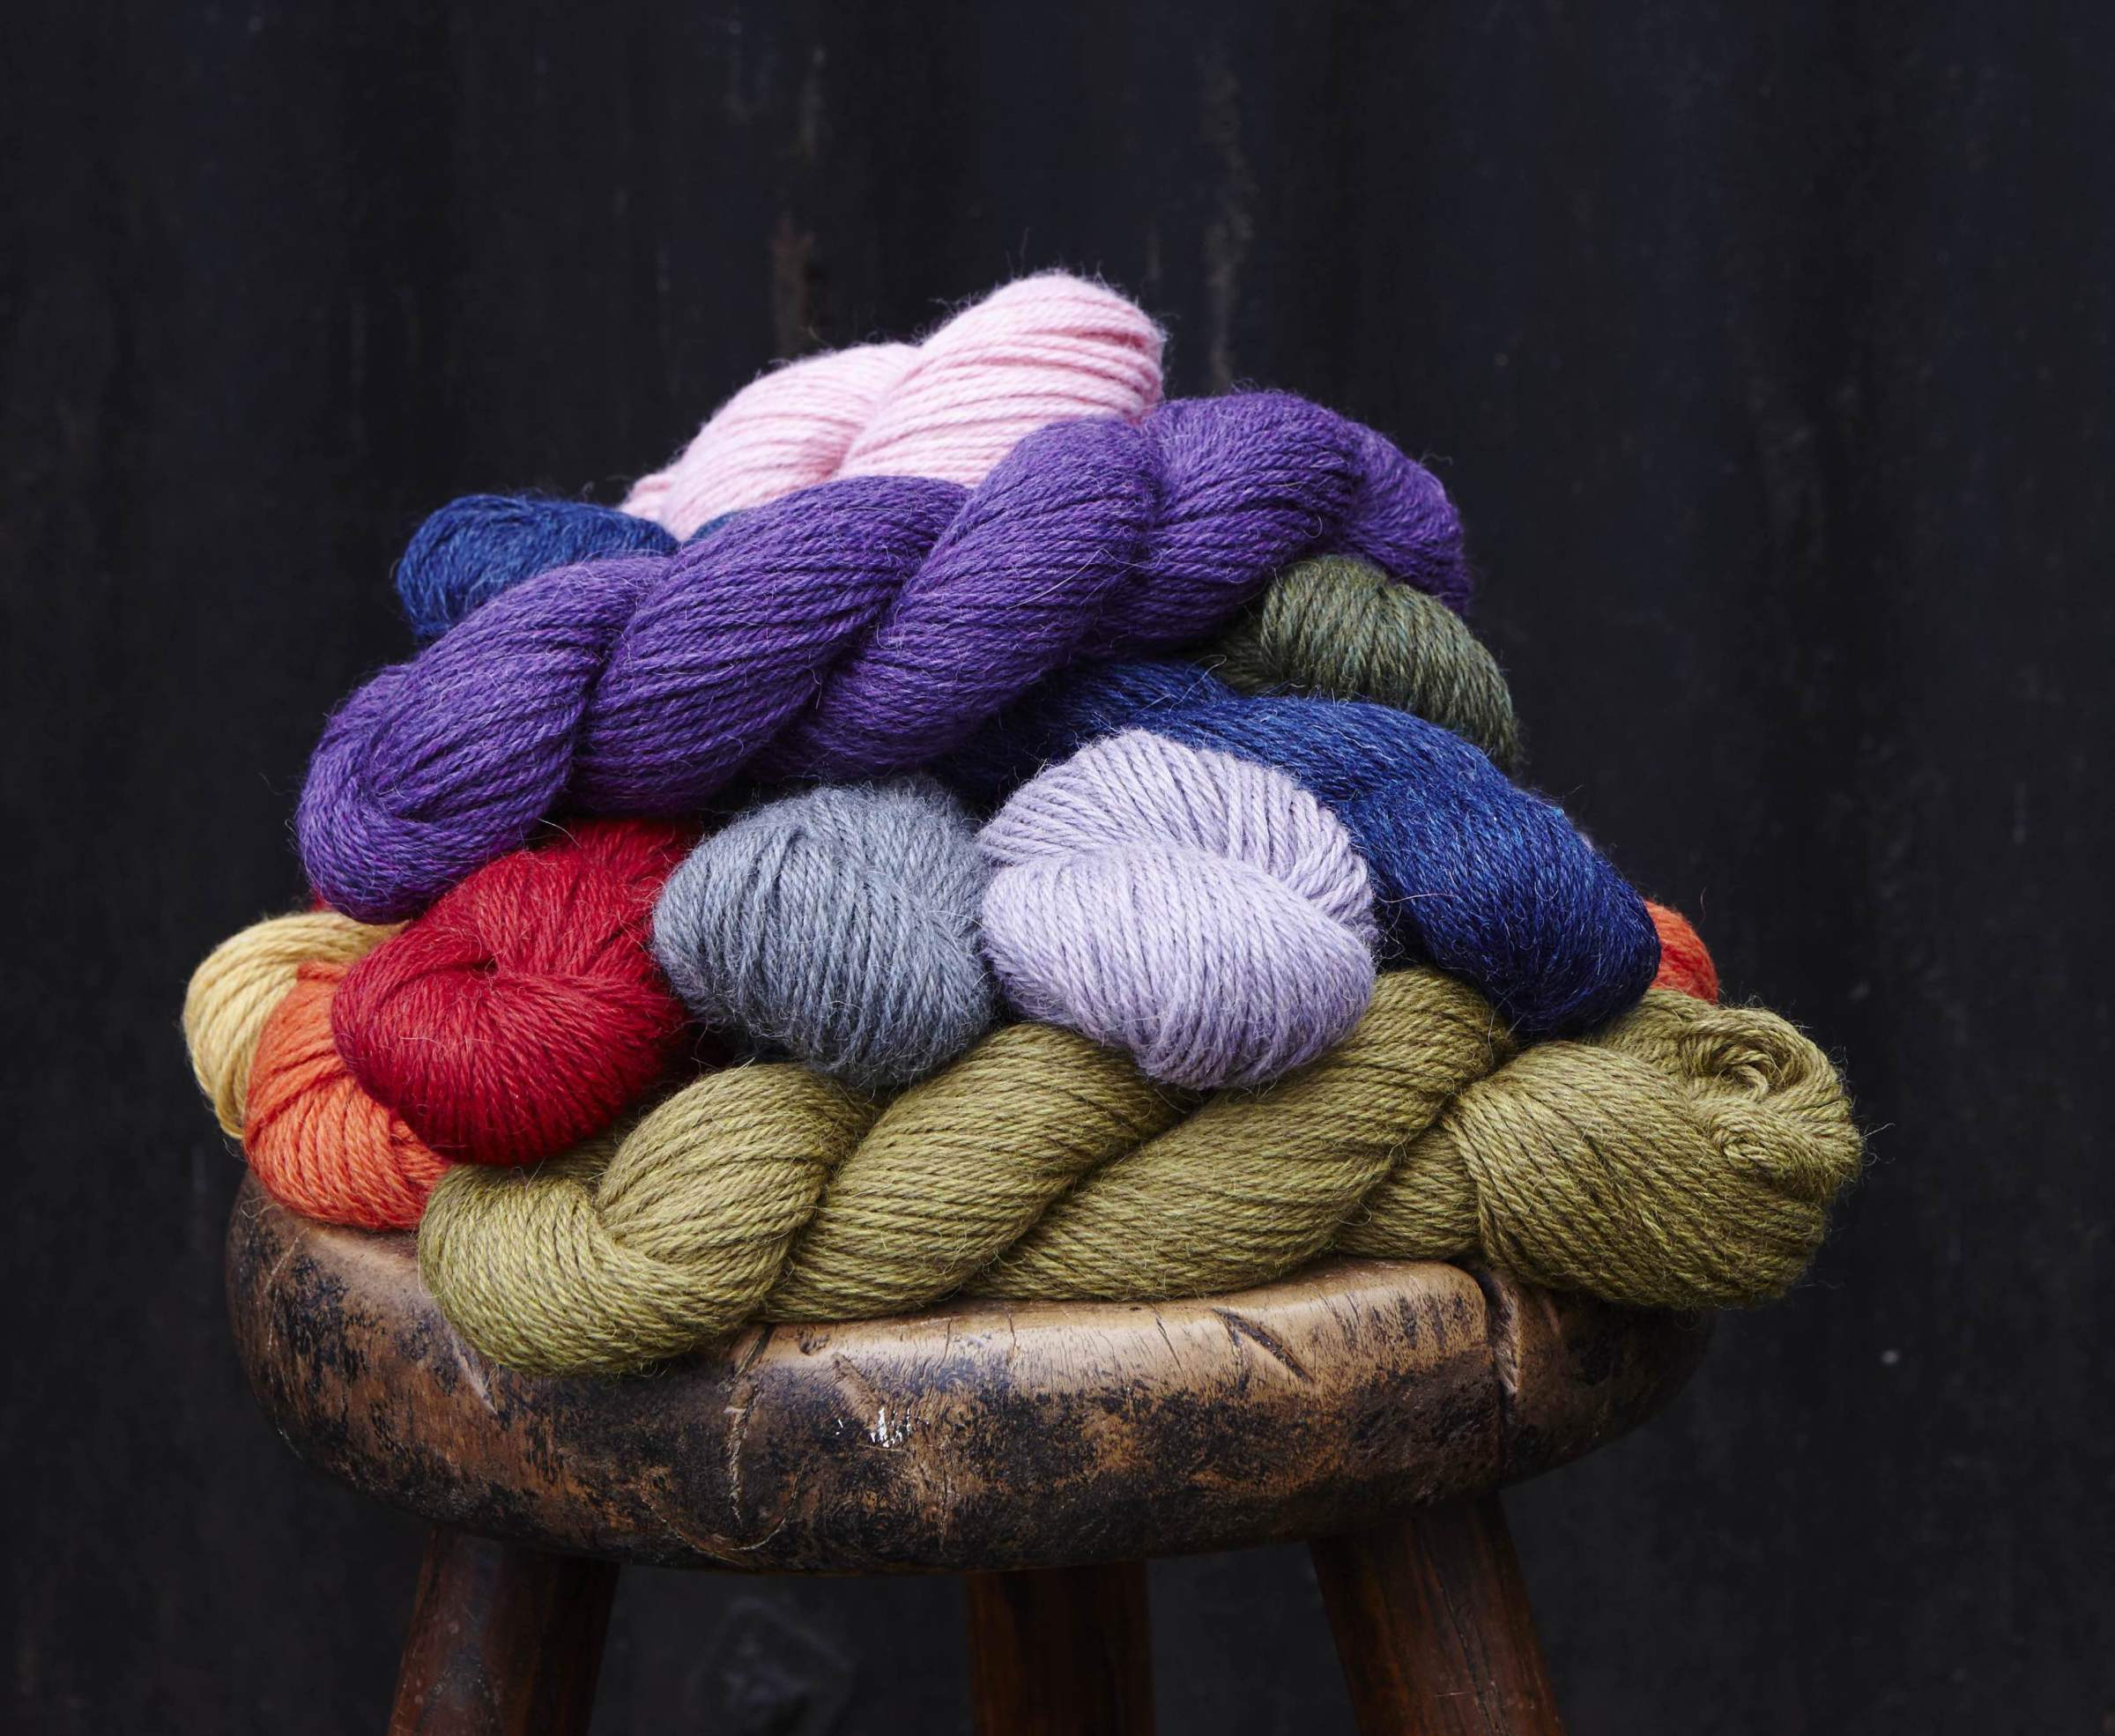 Aymara, a beautiful baby alpaca in a sumptuous palette of classic neutrals and vibrant brights.